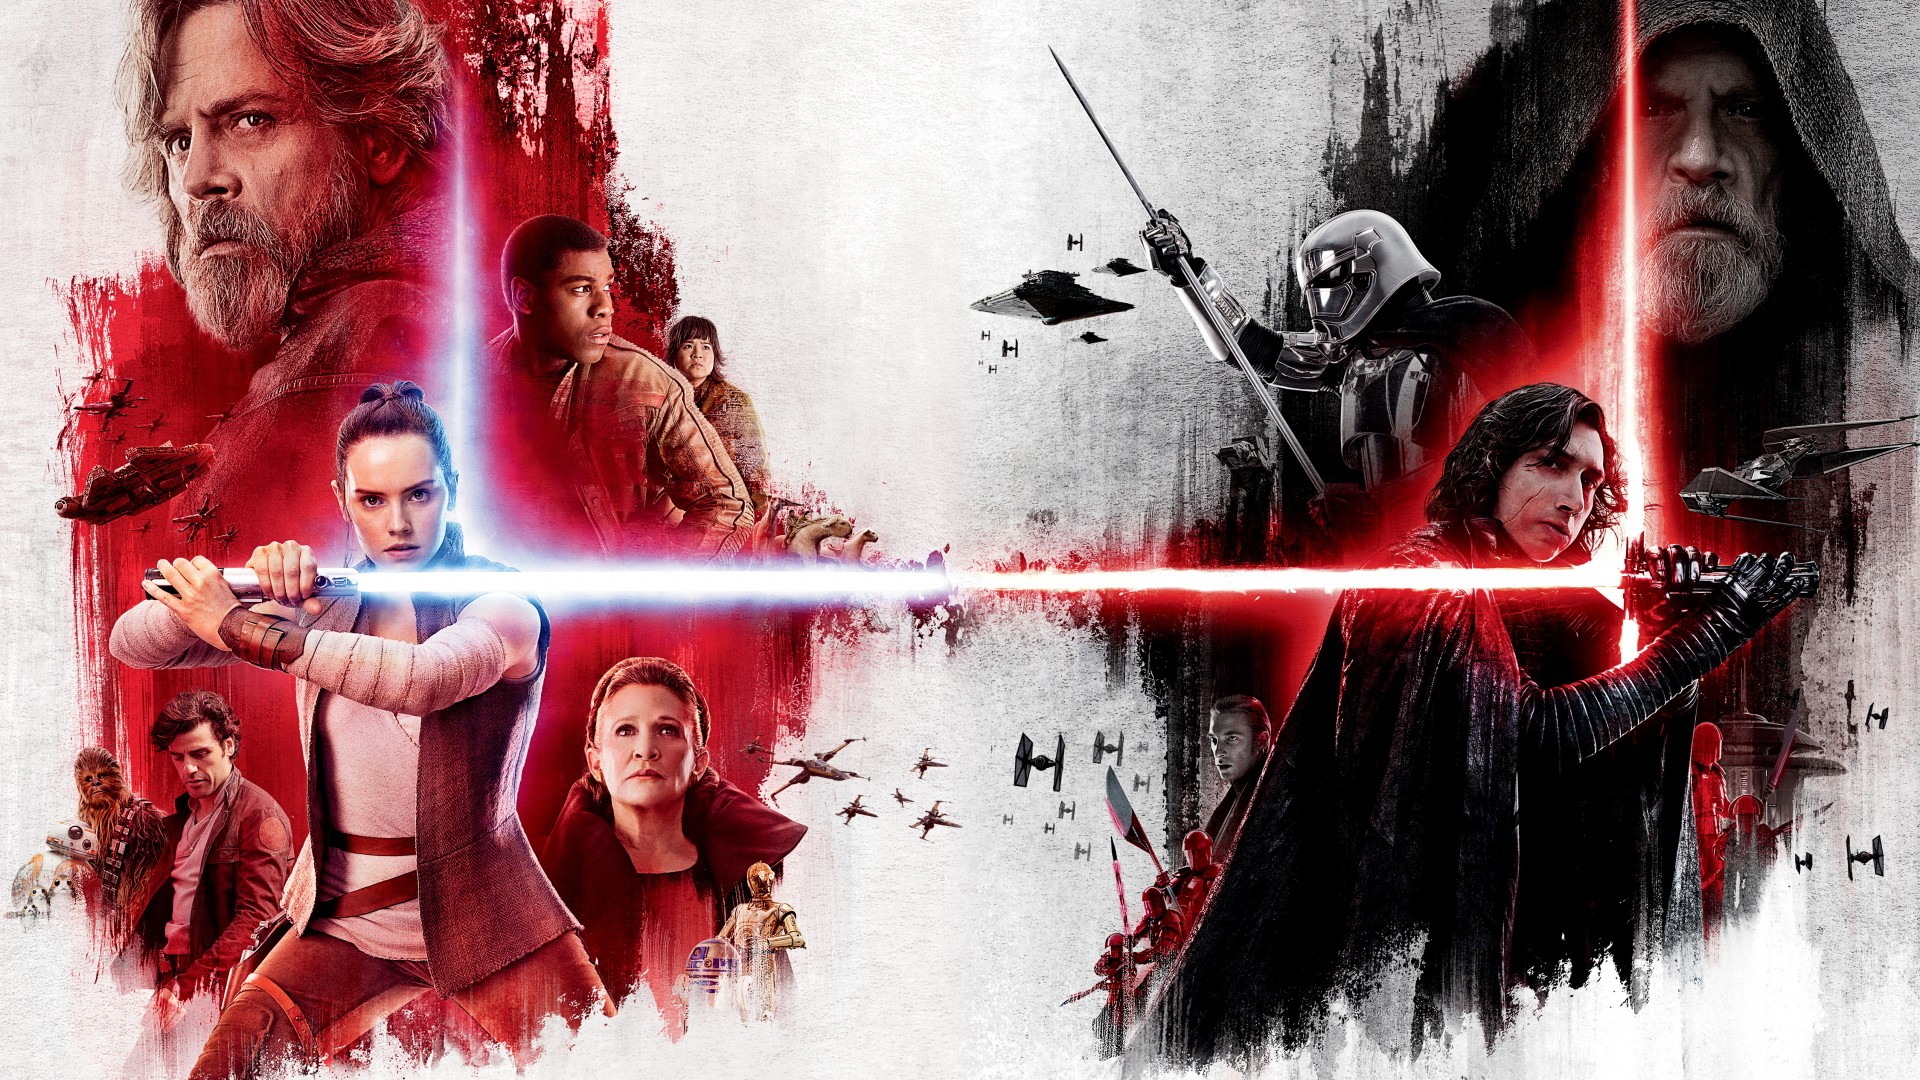 Reylo Wallpaper Hd Bootscootinmusic.com